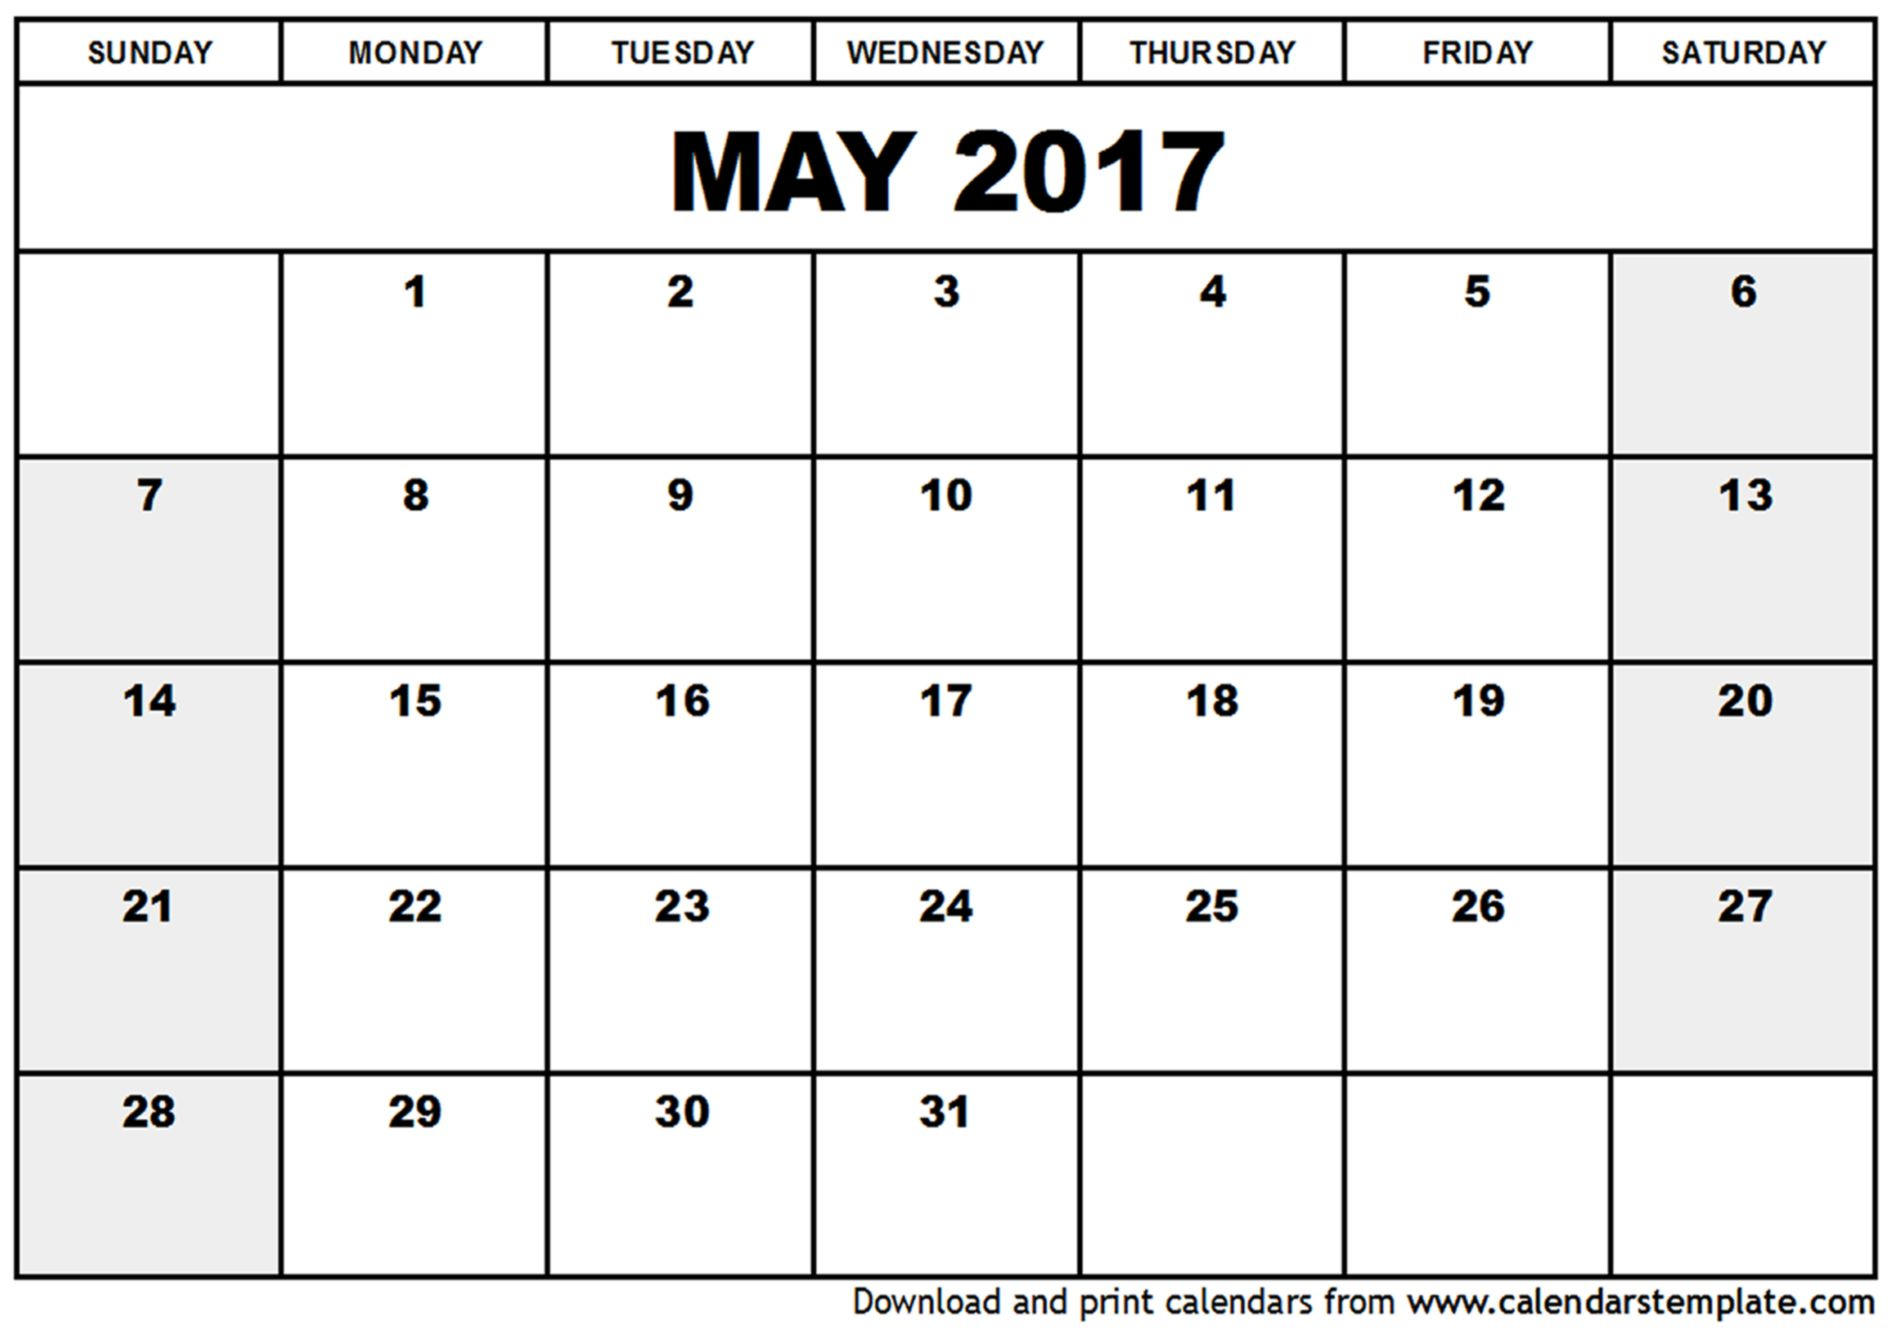 Free Printable Calendars   These Calendar Templates Are Also